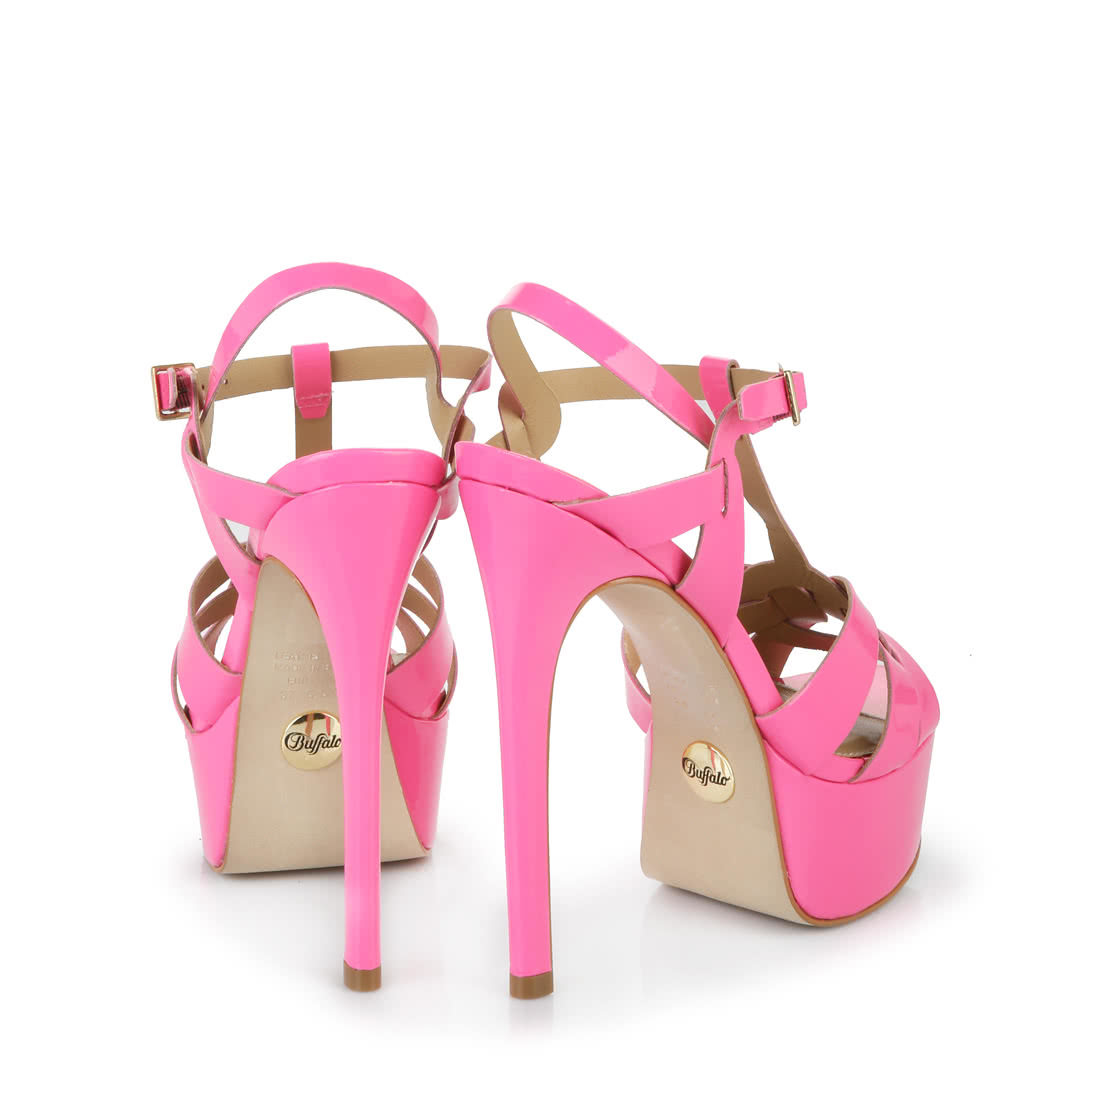 2cc2af5606cd0d Buffalo heeled sandals in neon pink buy online in BUFFALO Online ...